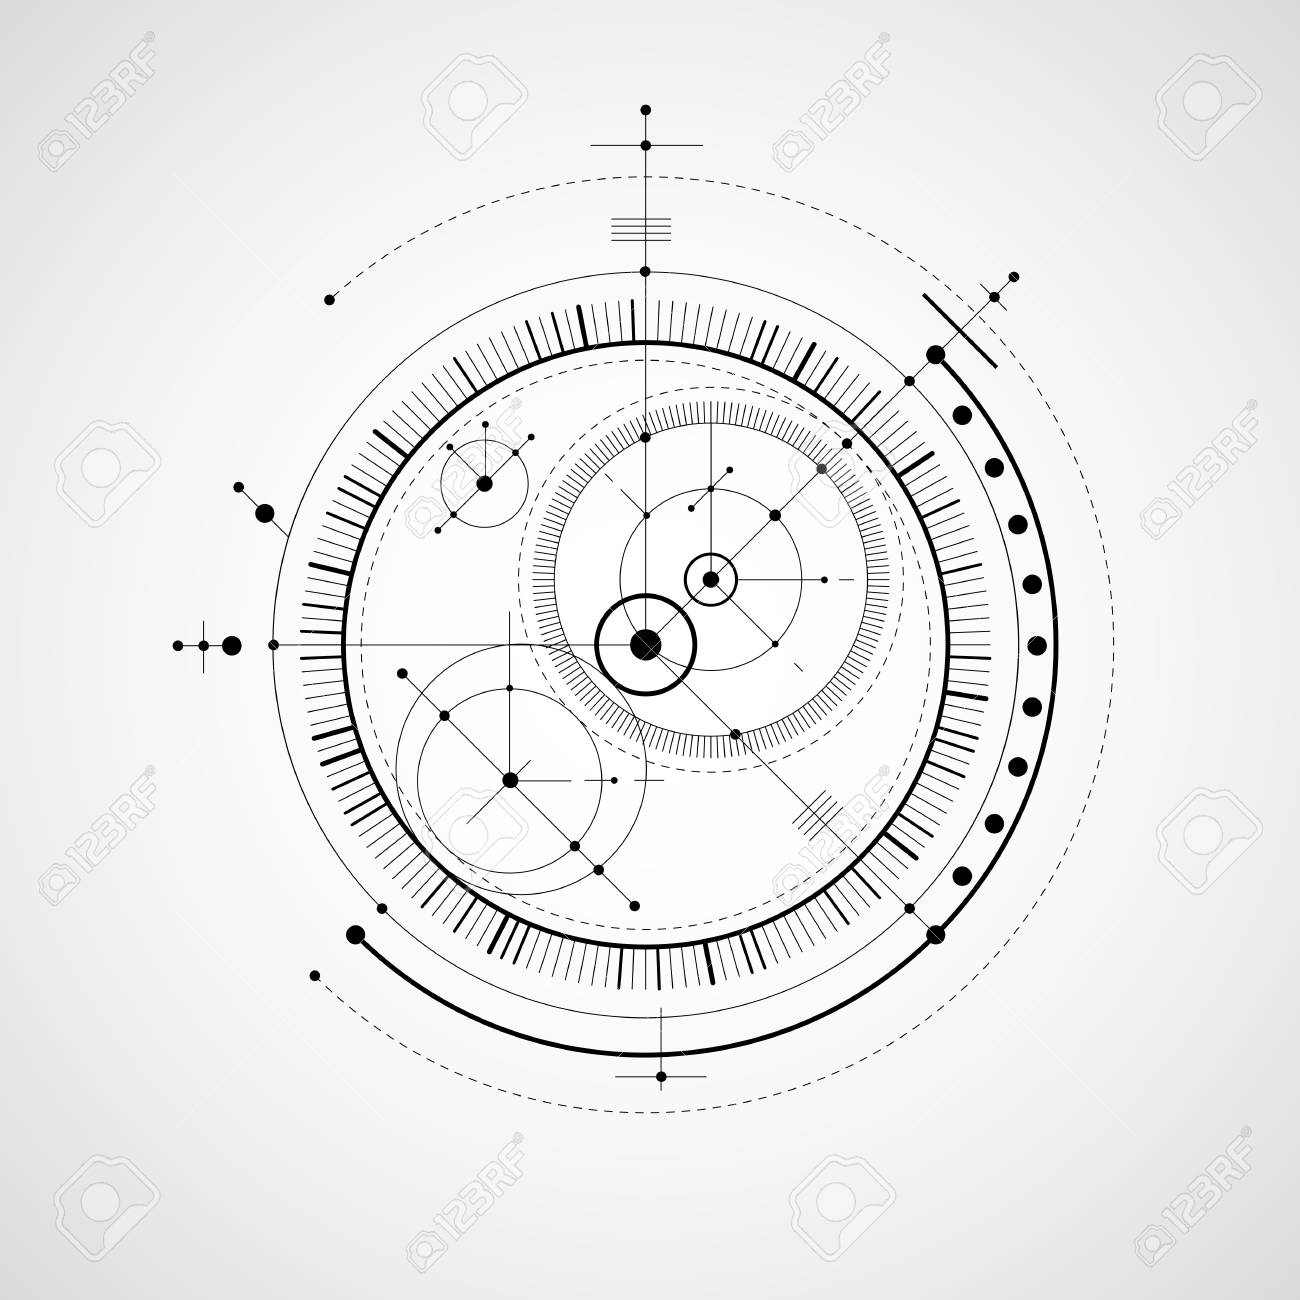 Mechanical scheme black and white vector engineering drawing mechanical scheme black and white vector engineering drawing with circles and geometric parts